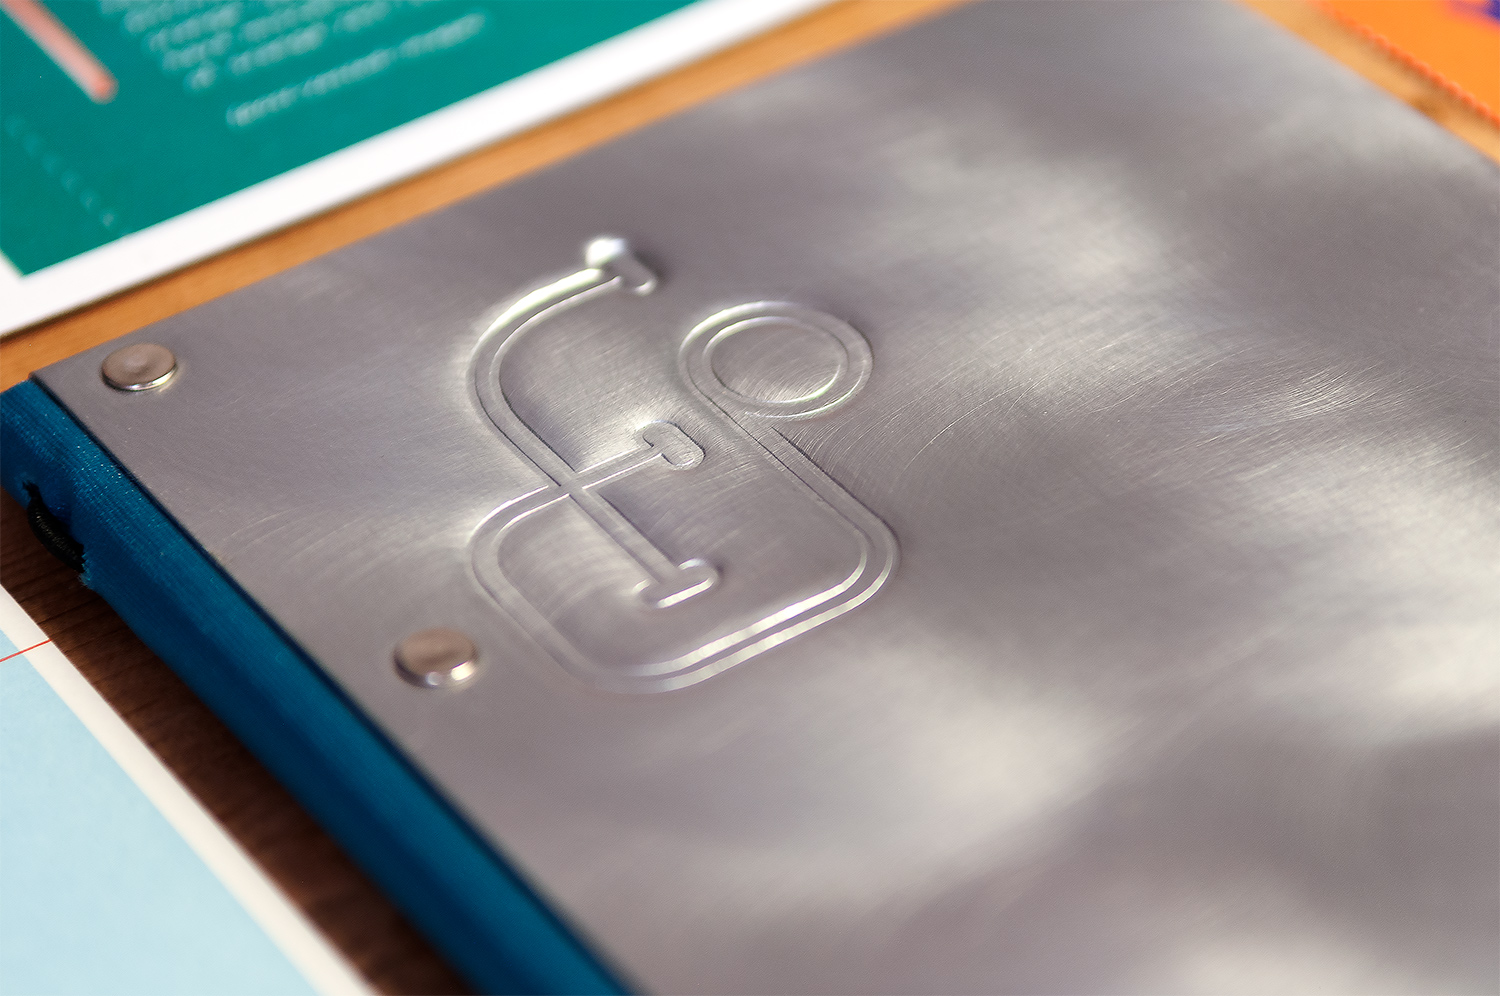 Brand design and marketing collateral for Foundry Project by Saint Design